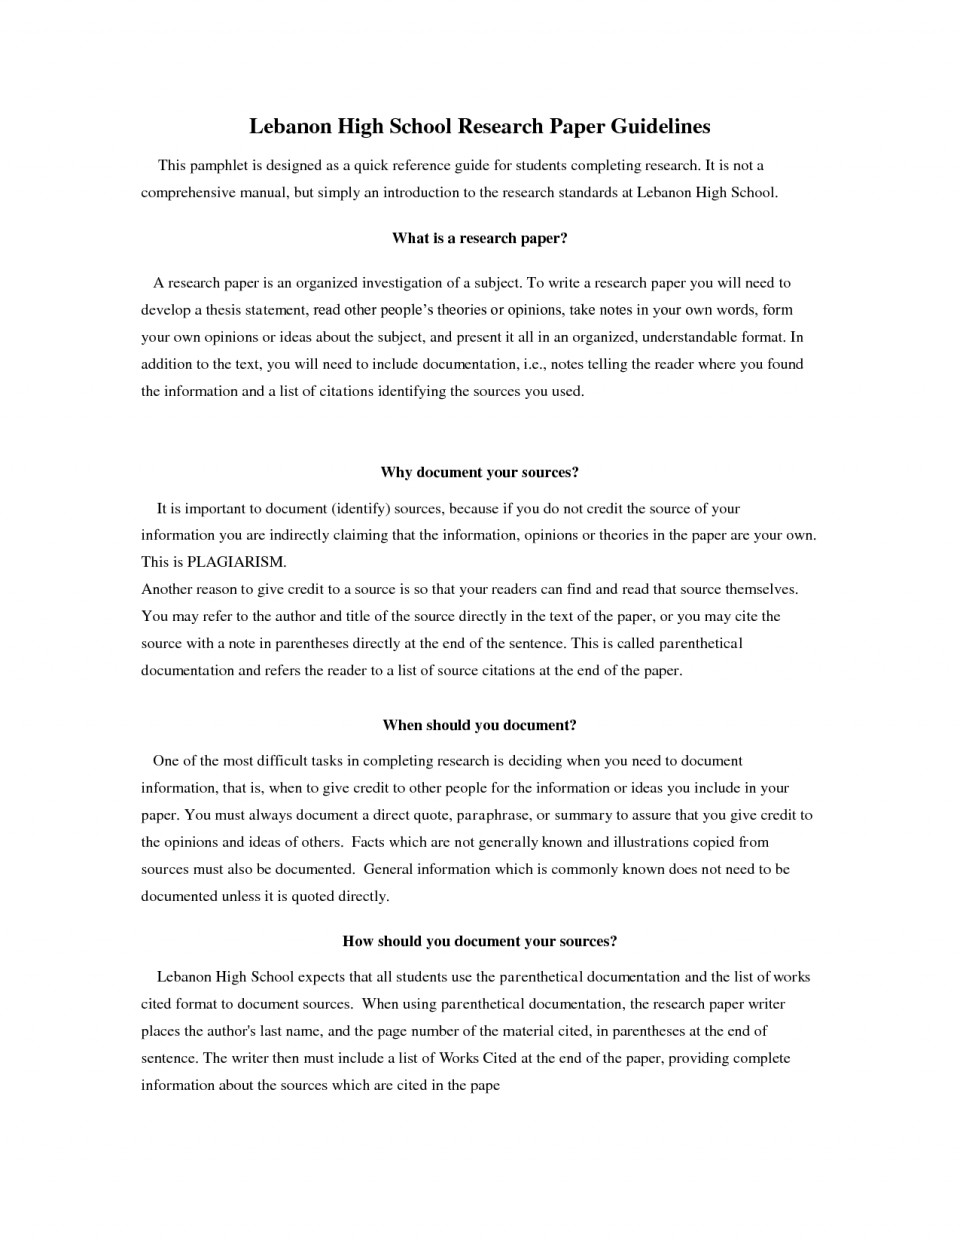 024 Research Paper Good Singular Topic Topics History Reddit Argumentative About Sports 960